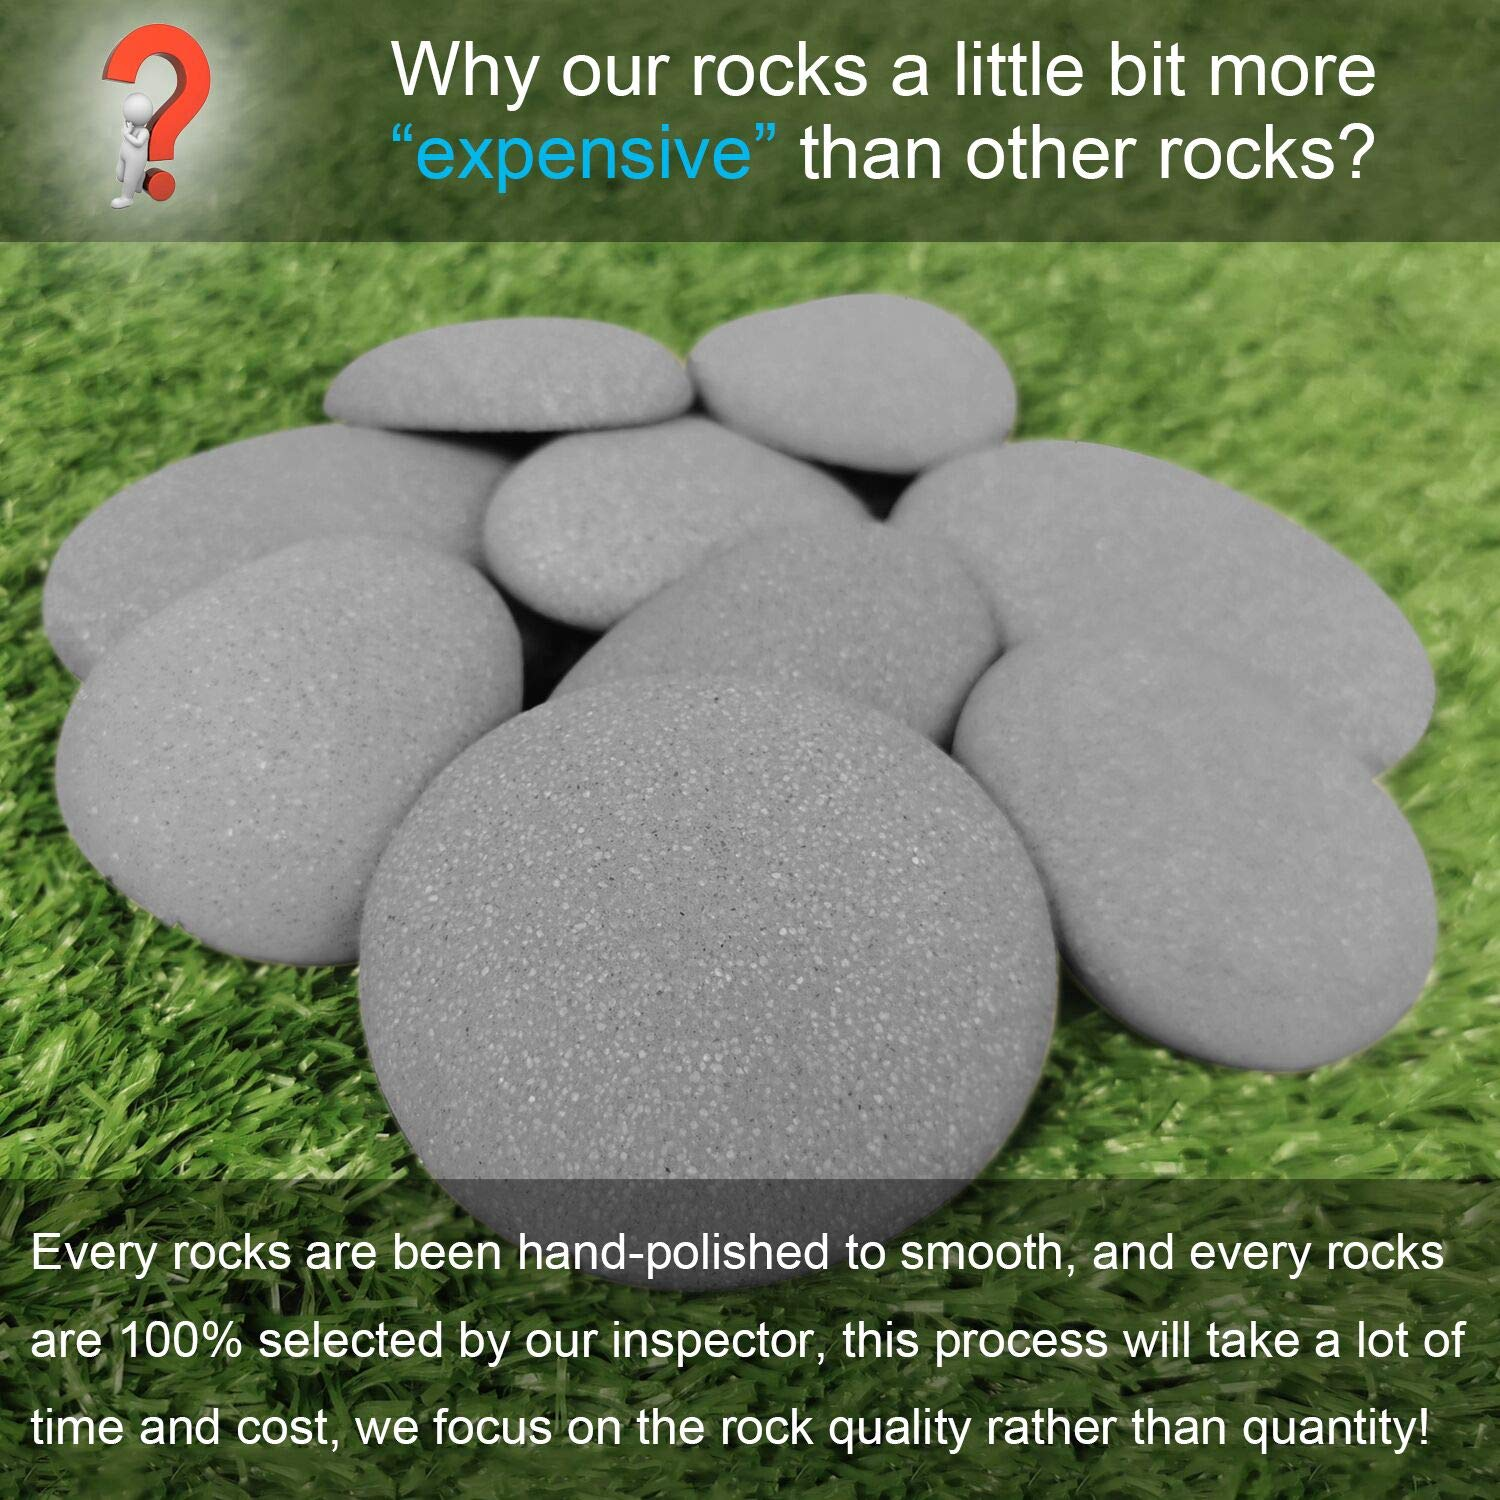 Big Polished Rocks for Painting Art Supplies Crafts for Kids Age 4-8-12 Acrylic Paint 30 Transfer Designs Hide and Seek River Rocks Gifts for Boys and Girls Bingo Castle Rock Painting Kit